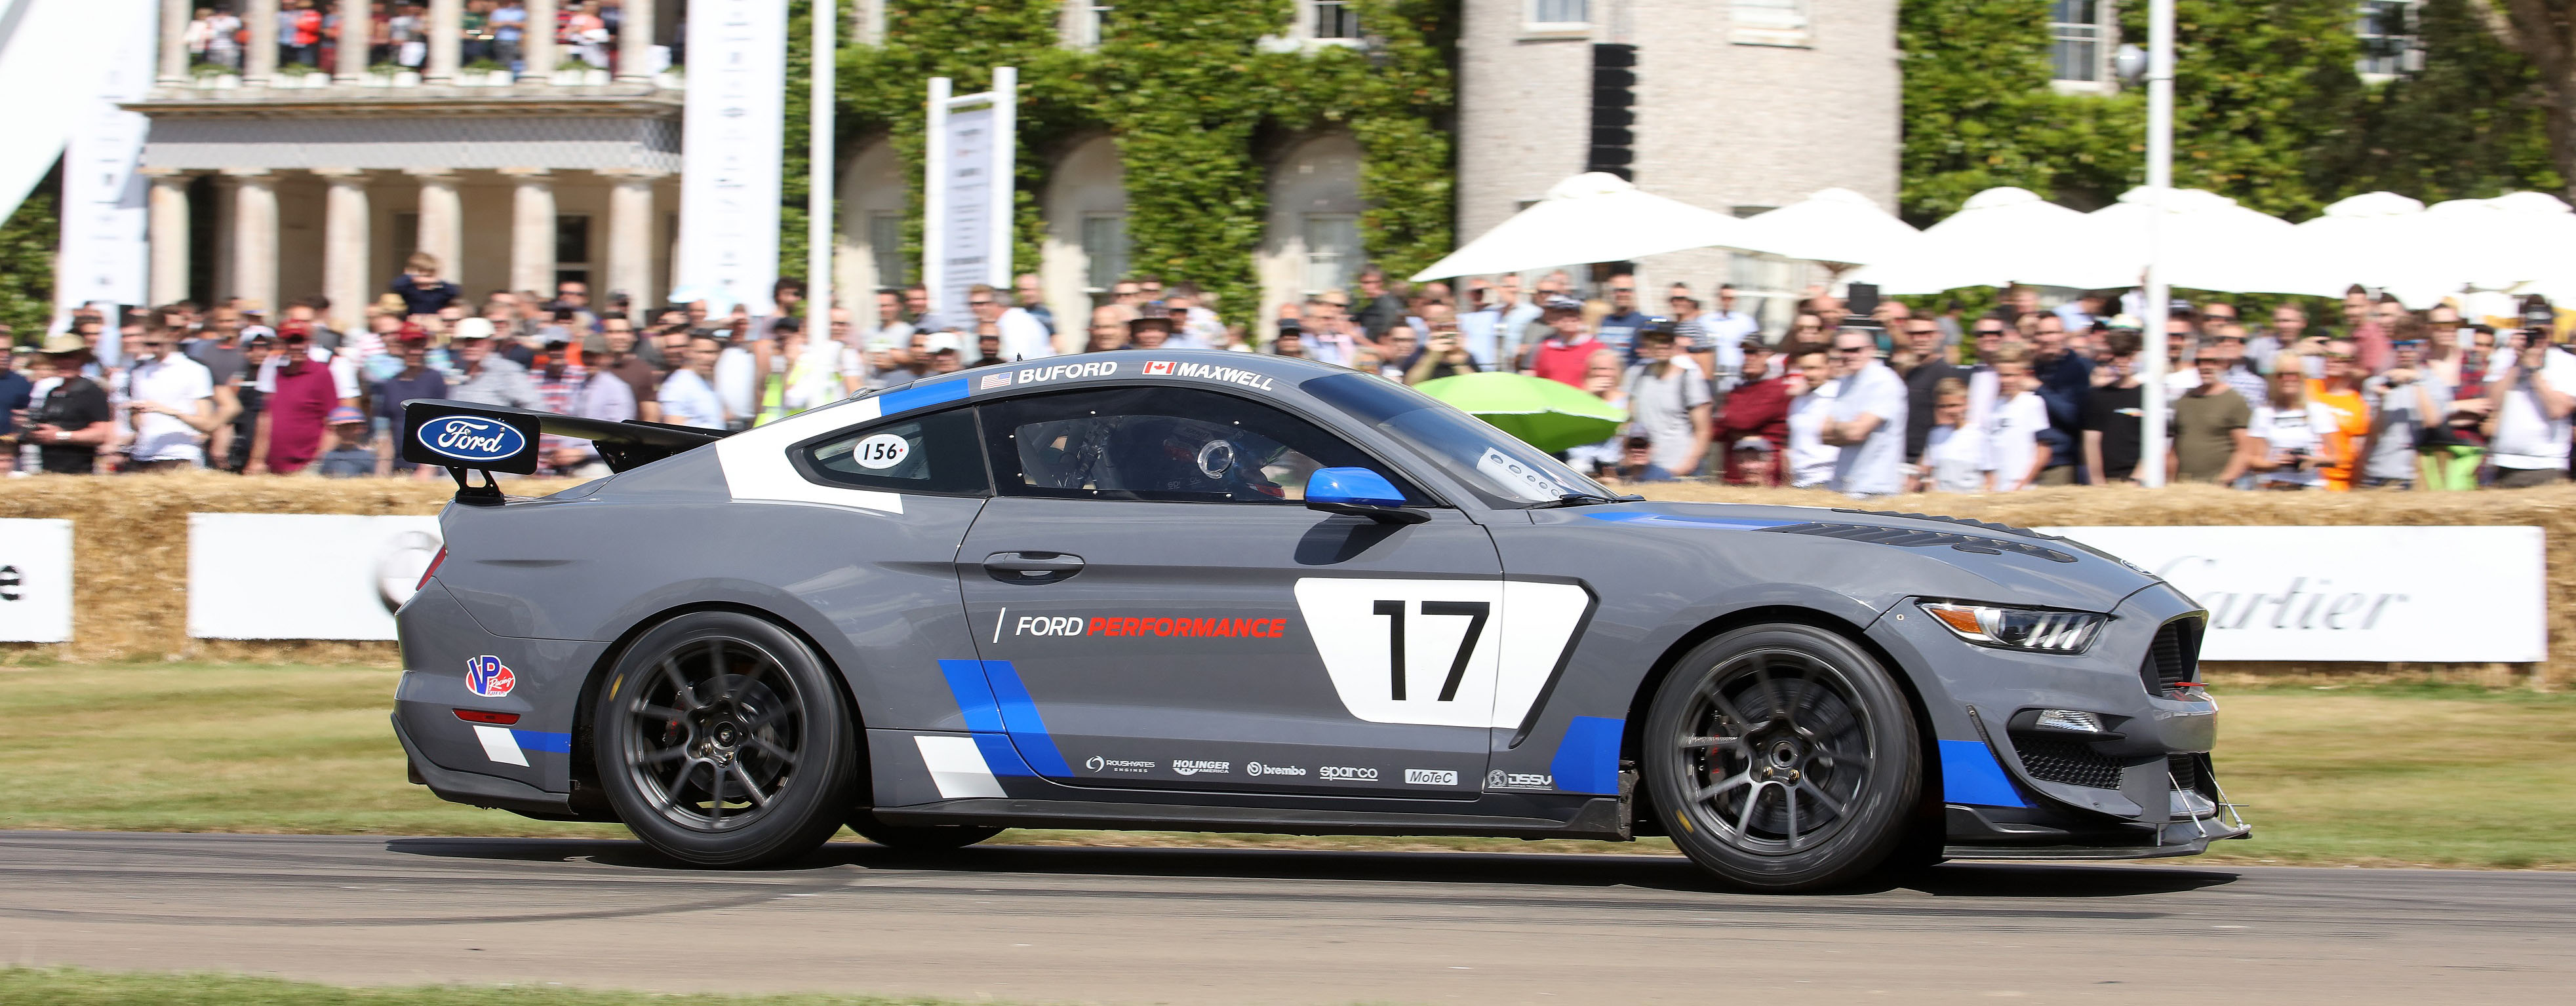 Ford Mustang Gt4 Makes European Racing Debut With Canadian